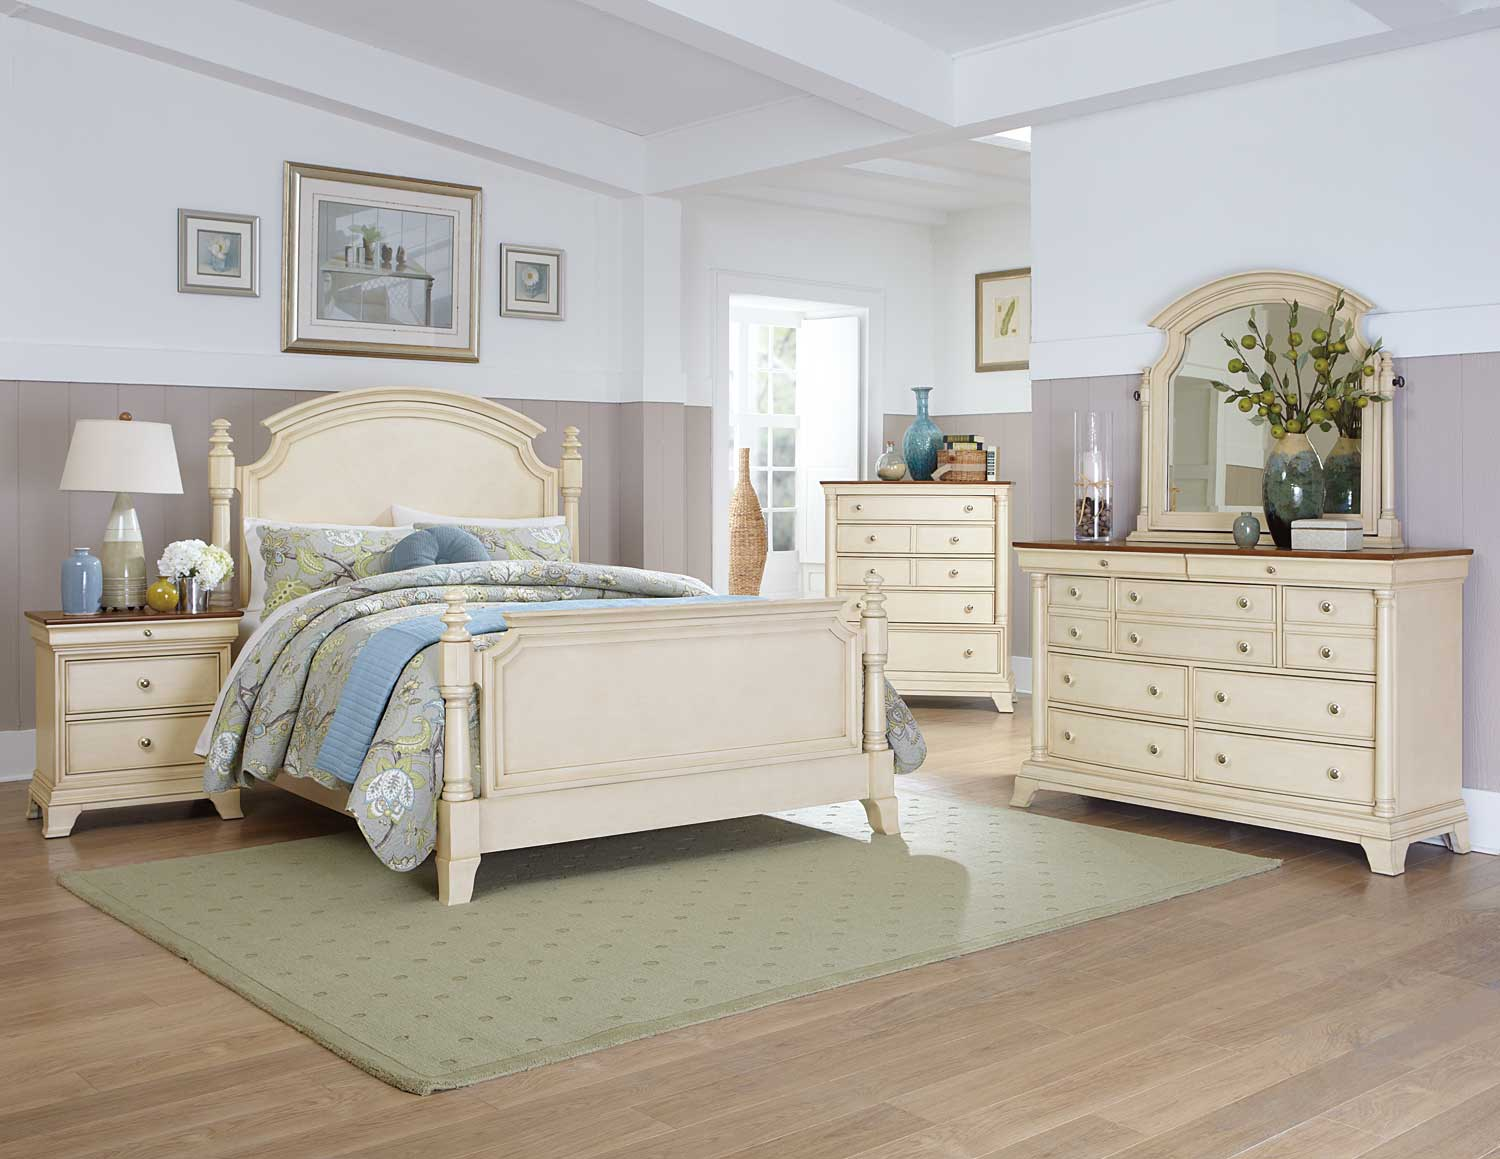 Homelegance inglewood ii bedroom set white b1402w bed for White bedroom collection